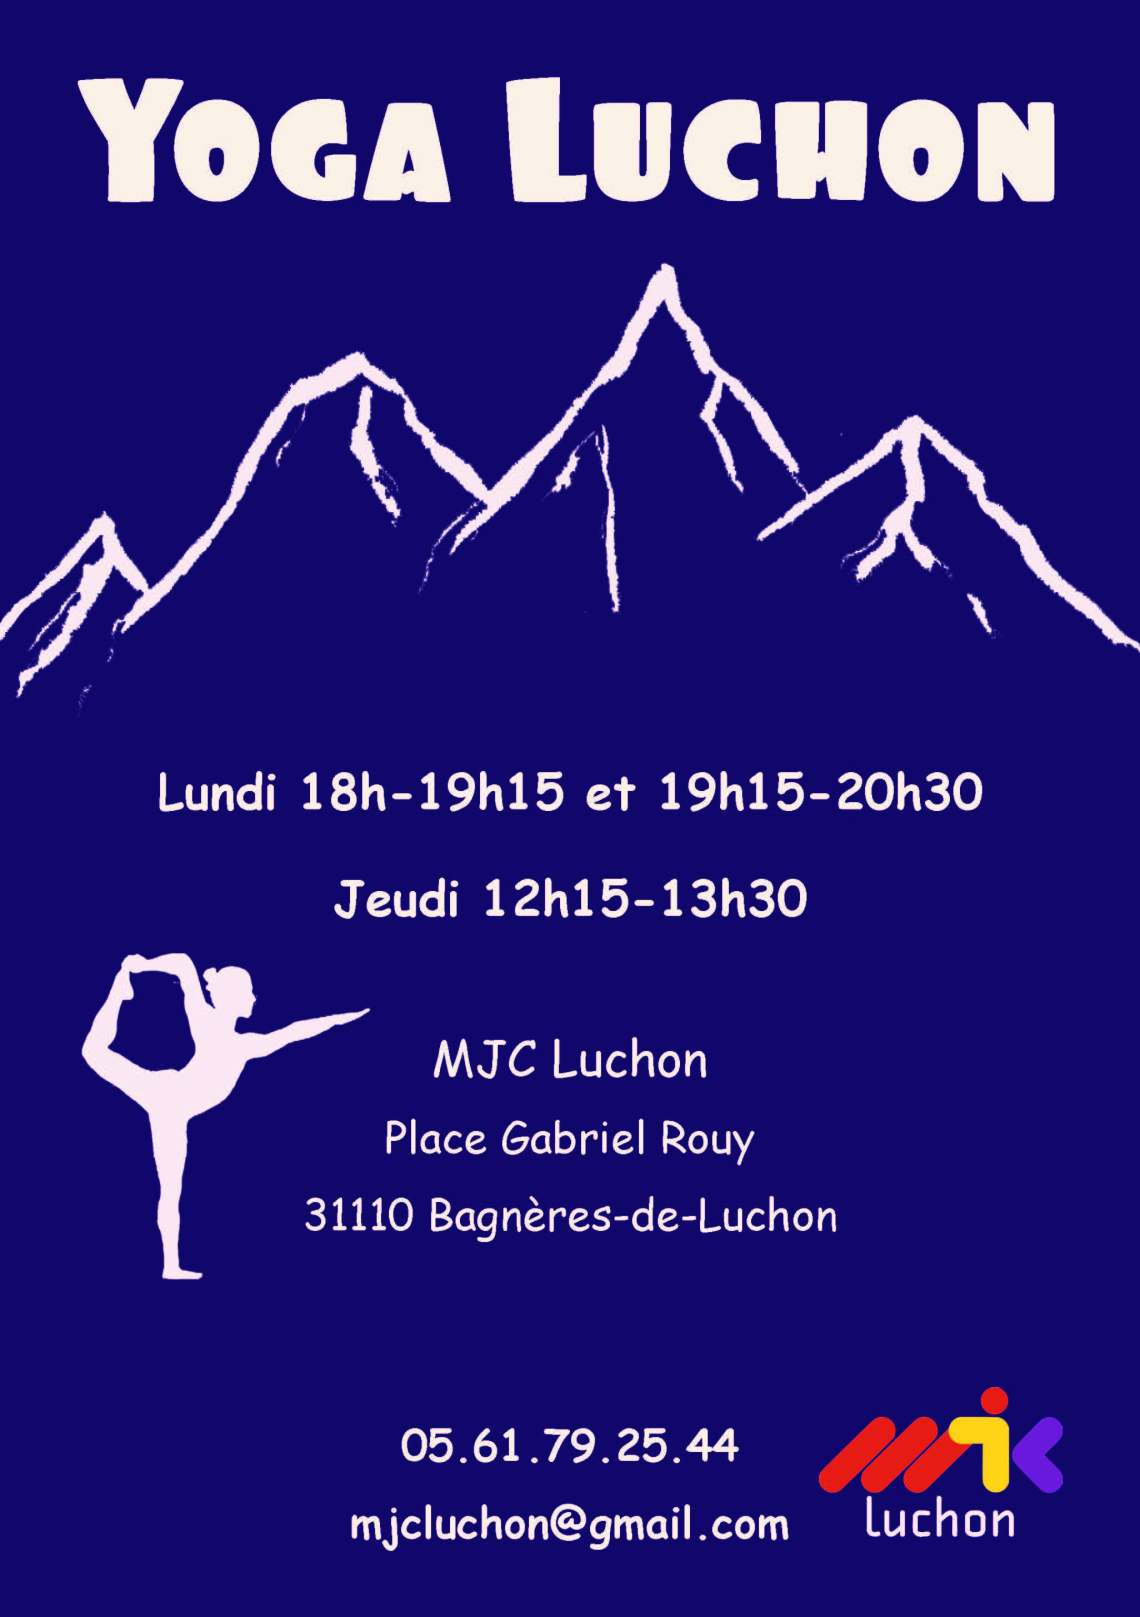 Yoga-Luchon_Page_1